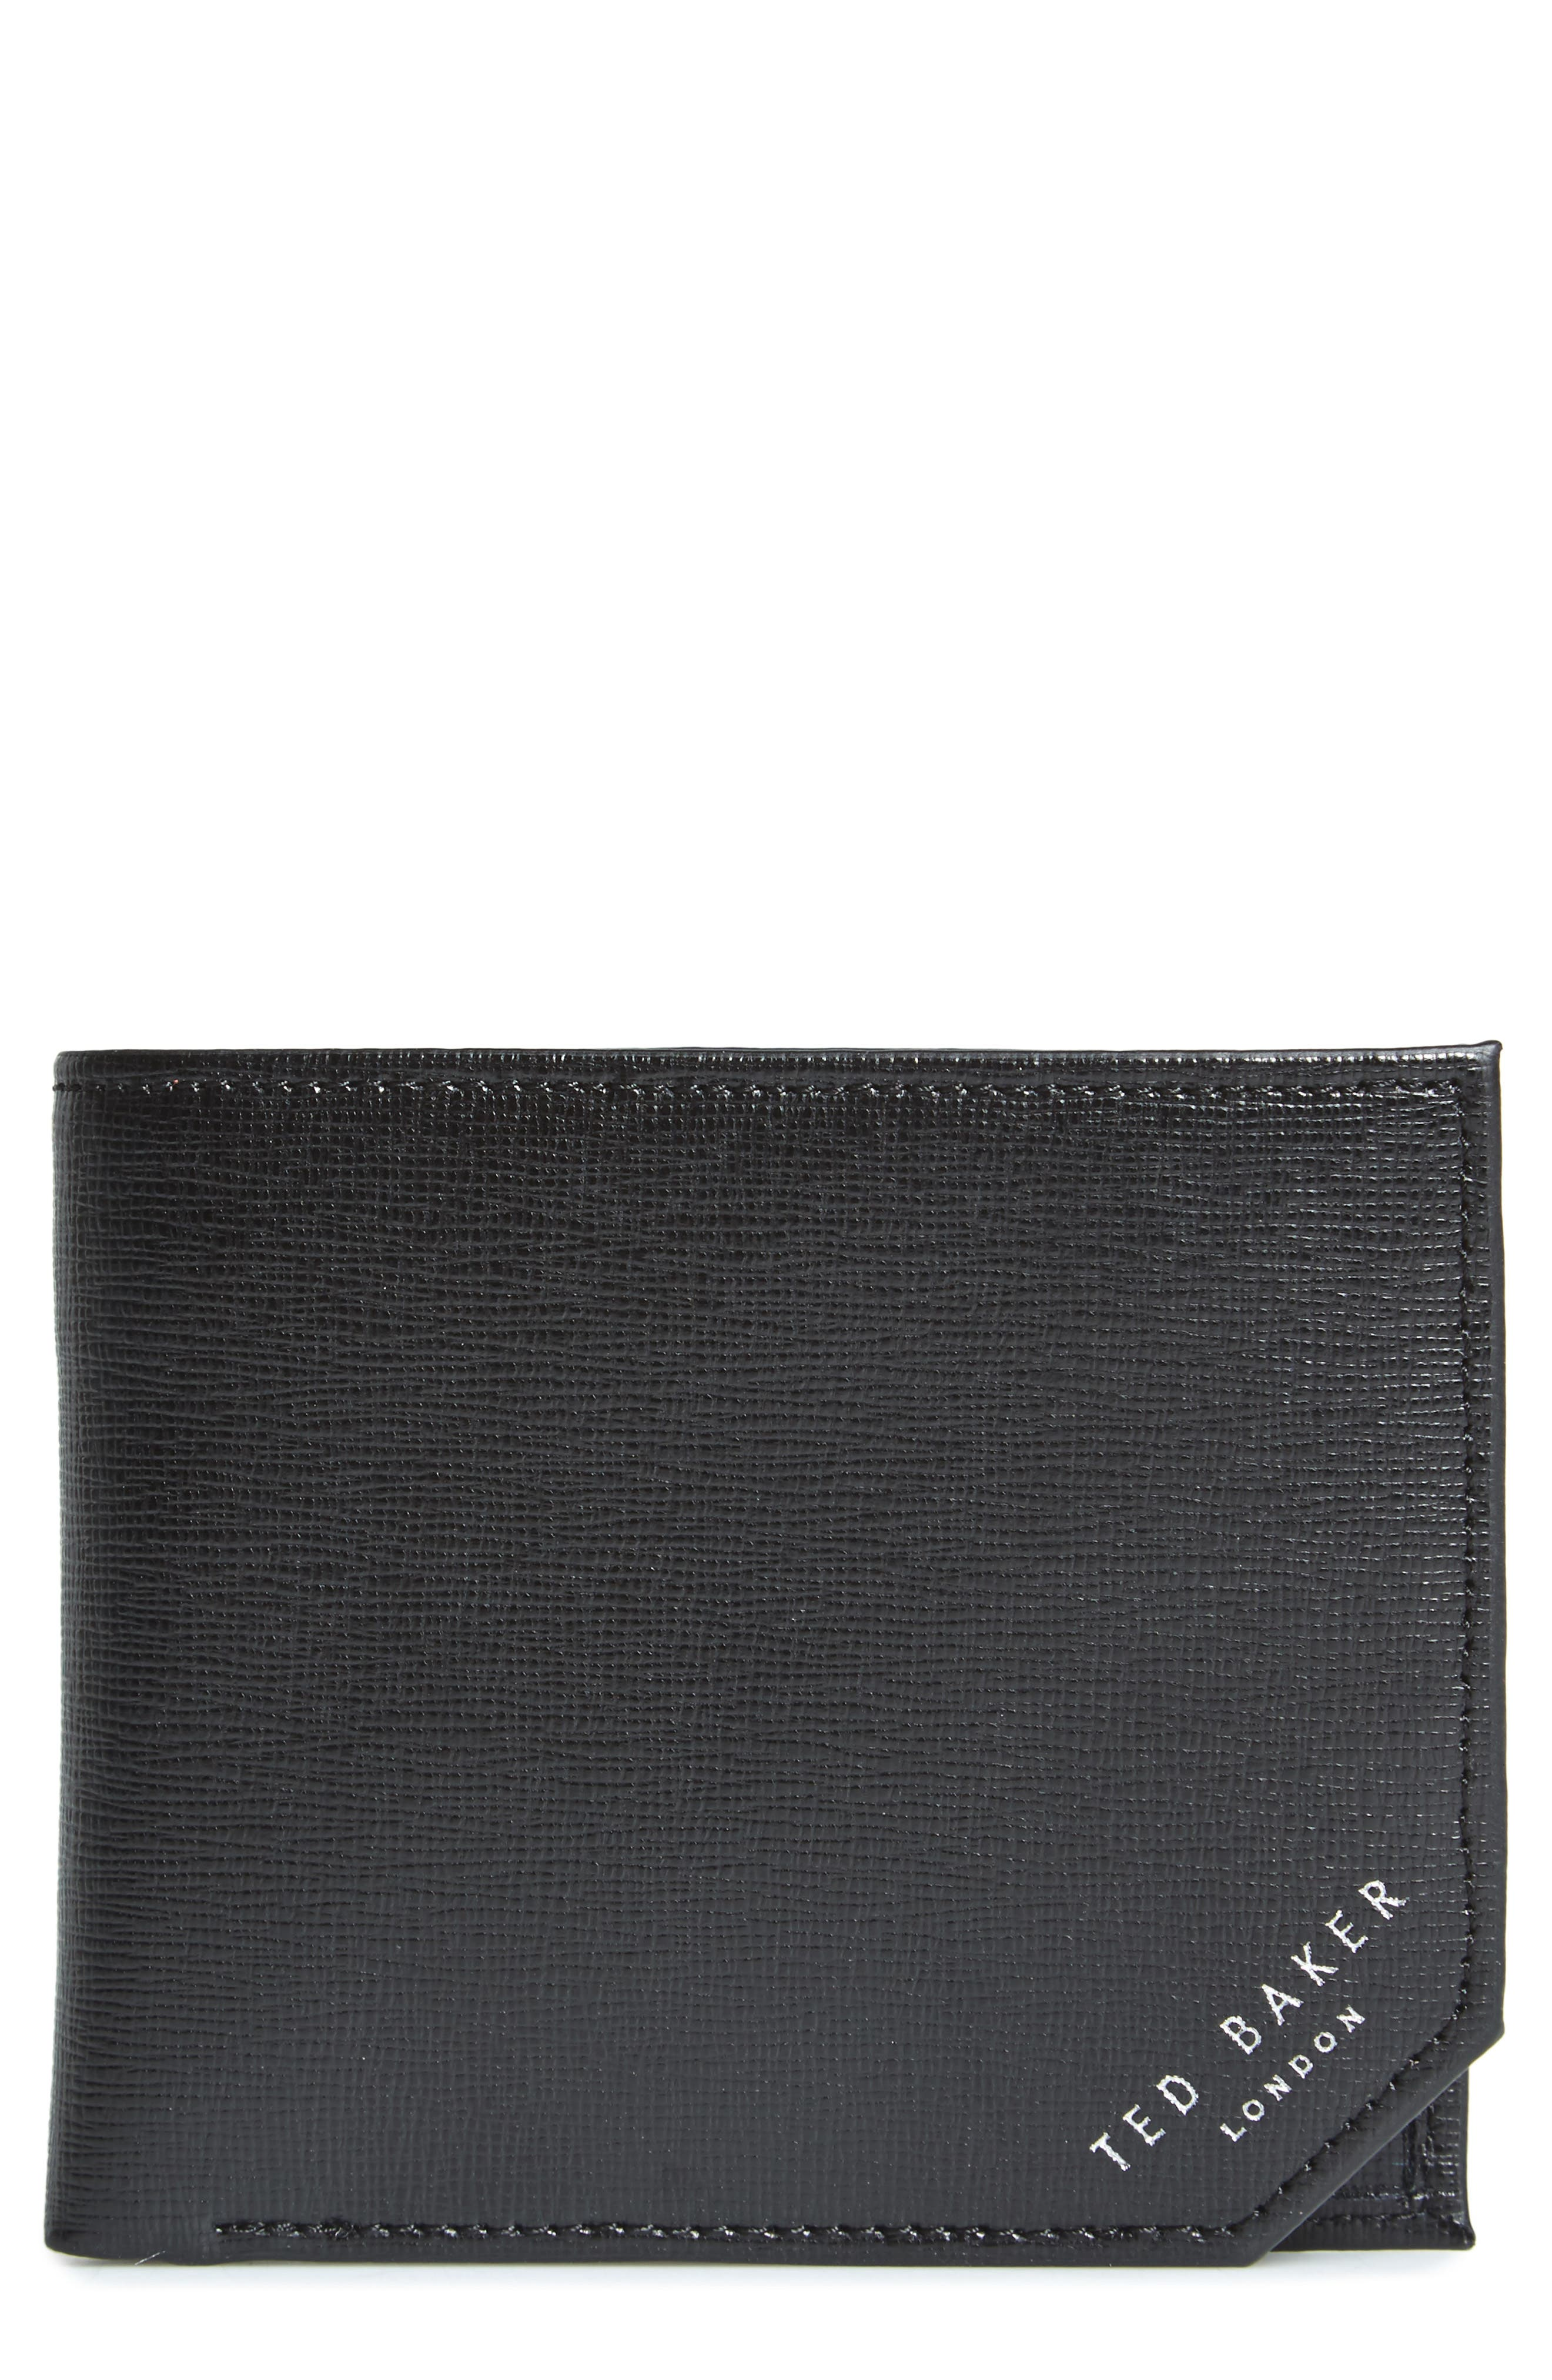 Stitchup Bifold Wallet,                         Main,                         color, 001